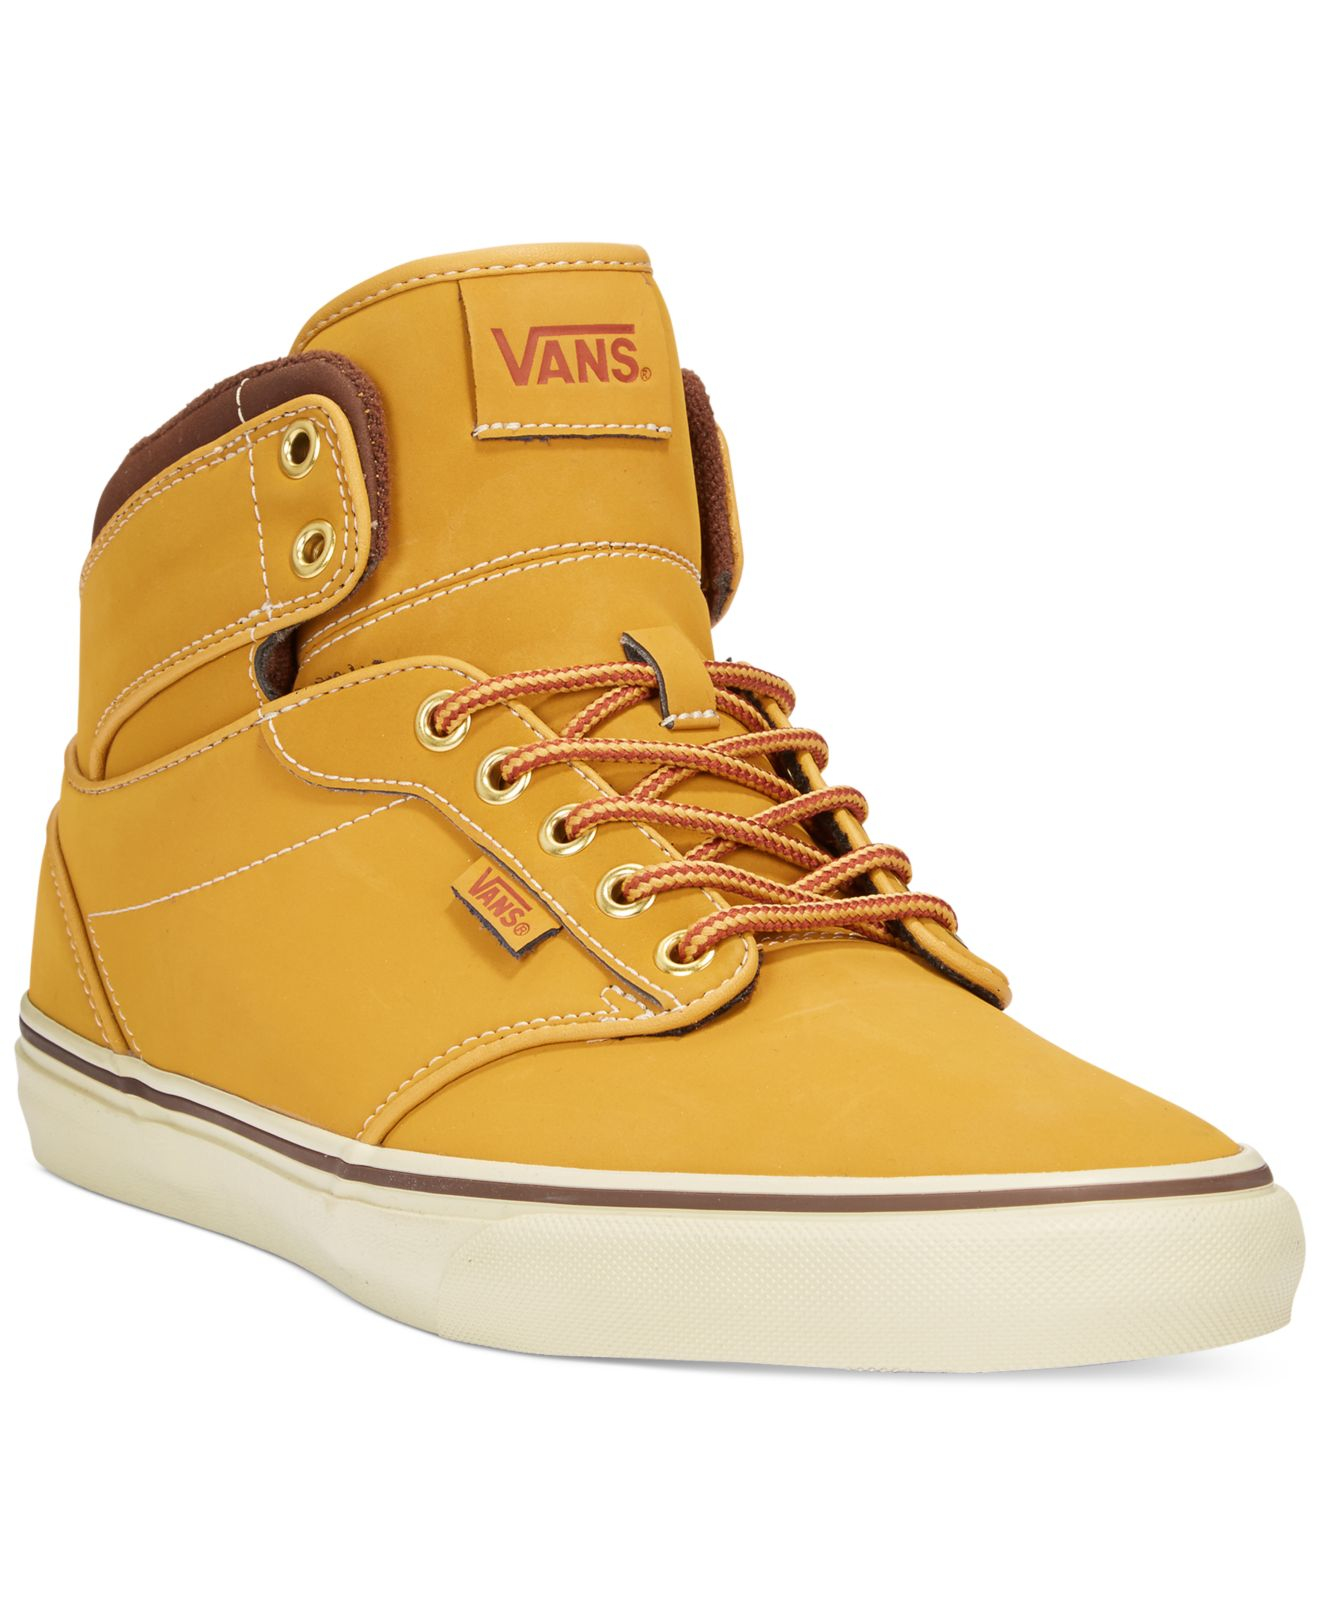 b4fac84596 Lyst - Vans Men s Atwood Hi Sneakers in Orange for Men